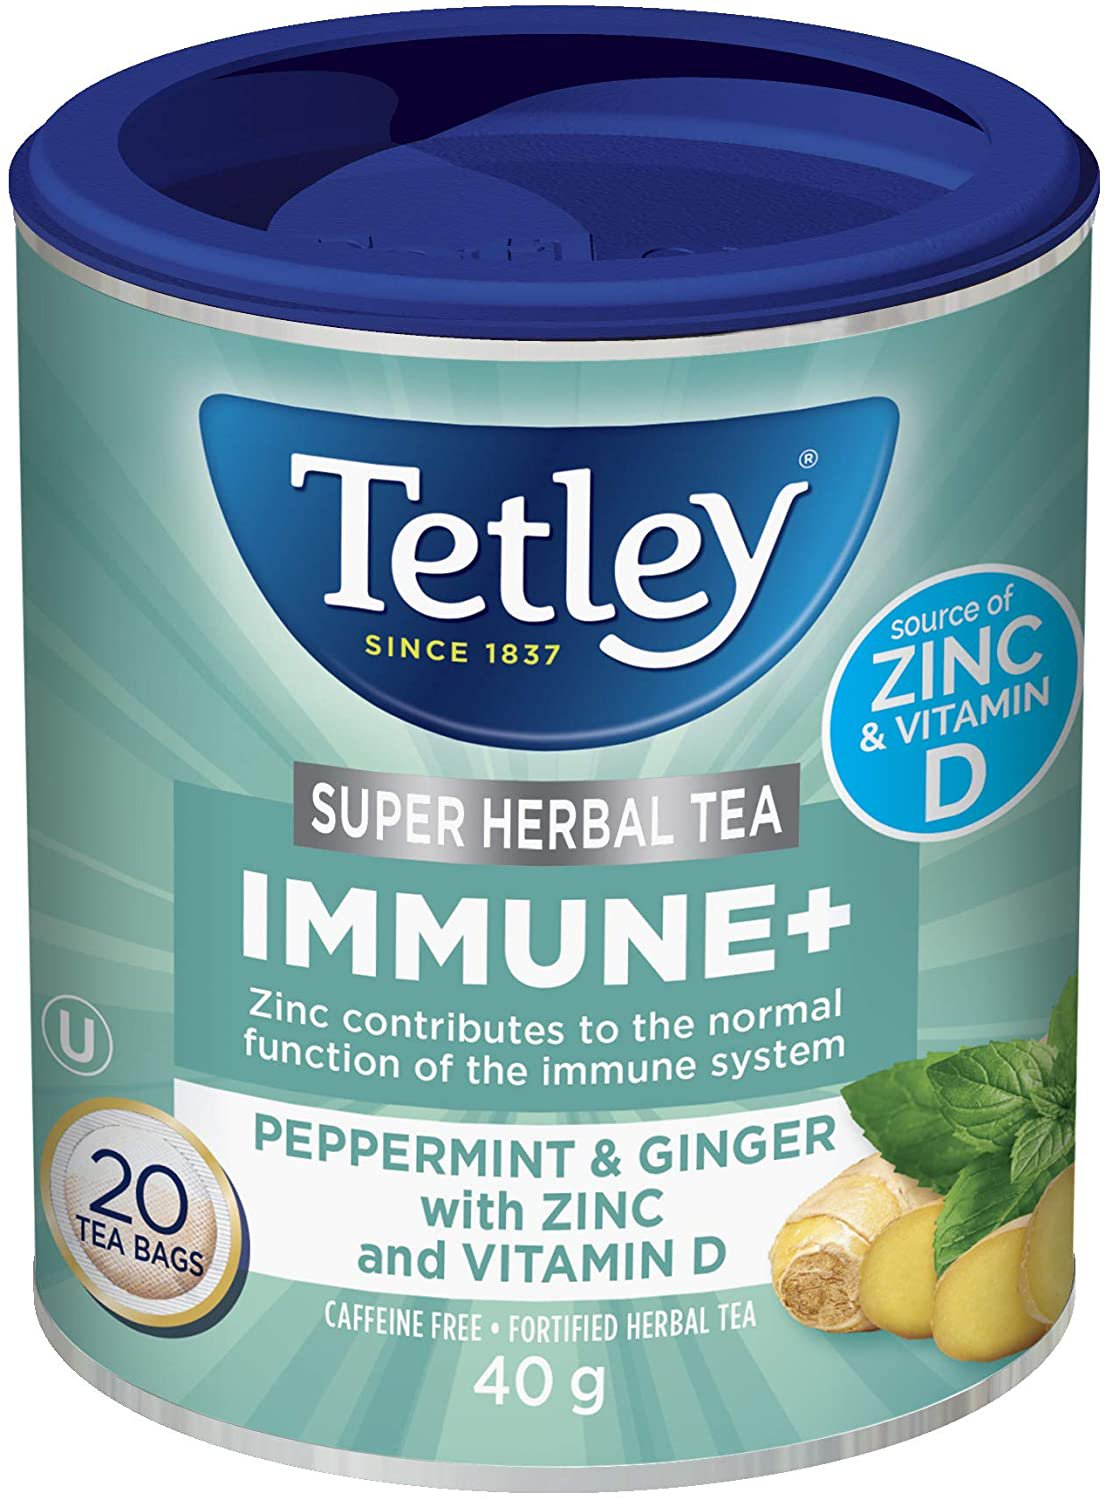 Tetley Immune with Ginger and Peppermint, Zinc and Vitamin D Super Herbal Tea 20 tea bags